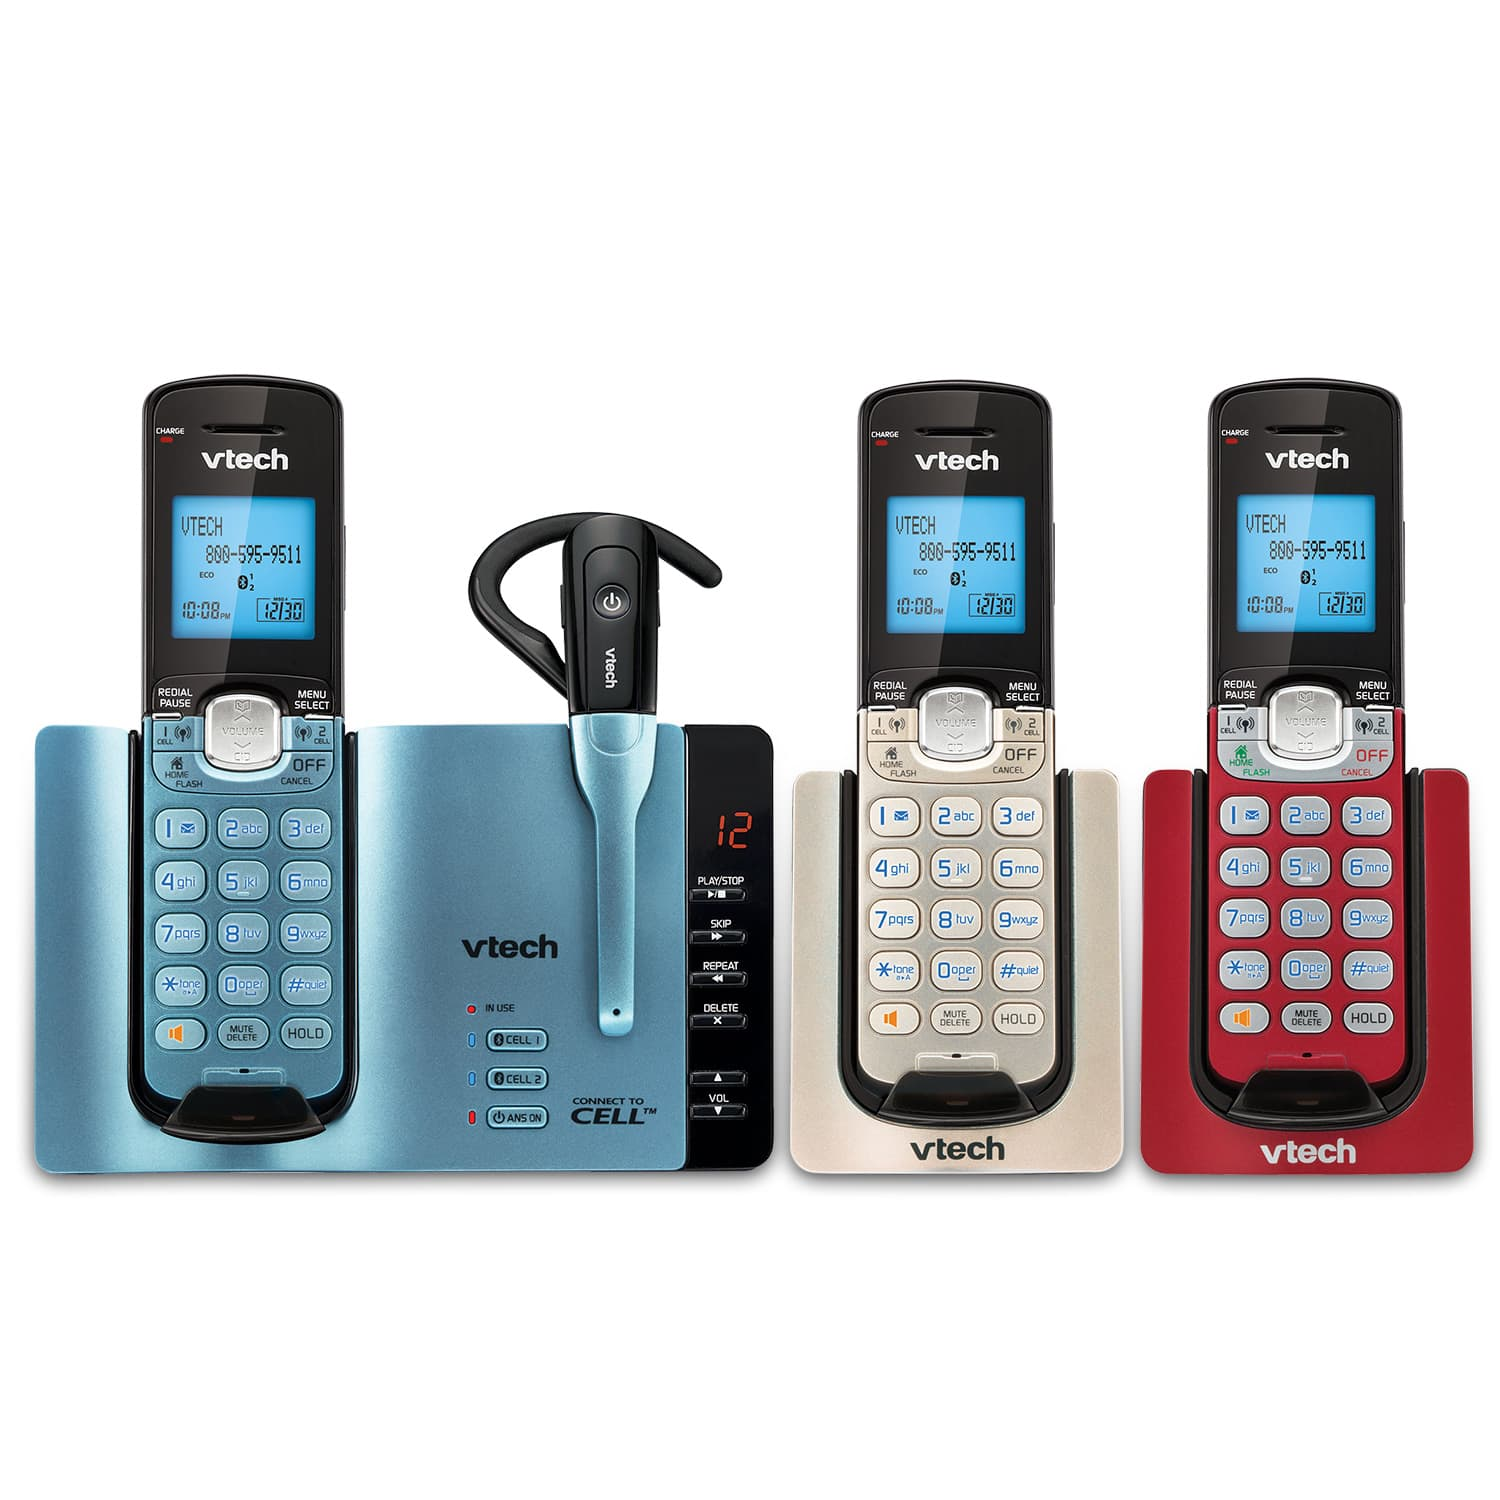 3 handset connect to cell phone system with cordless headset rh vtechphones com VTech Phone User Manual VTech Telephone User Manual